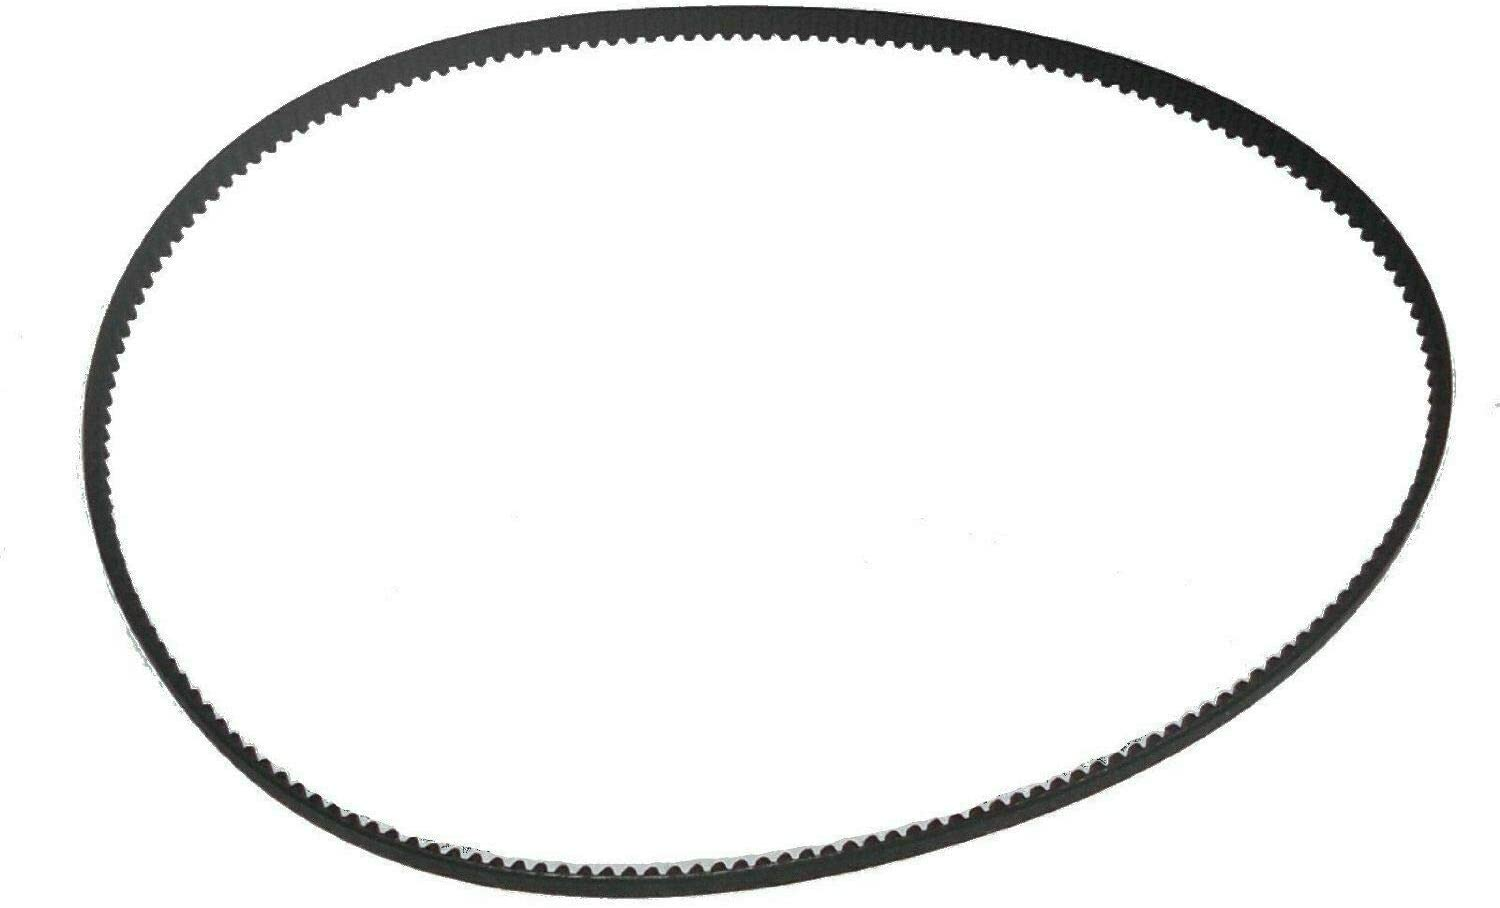 New Replacement Belt for Oster Bread Maker Machine 5821